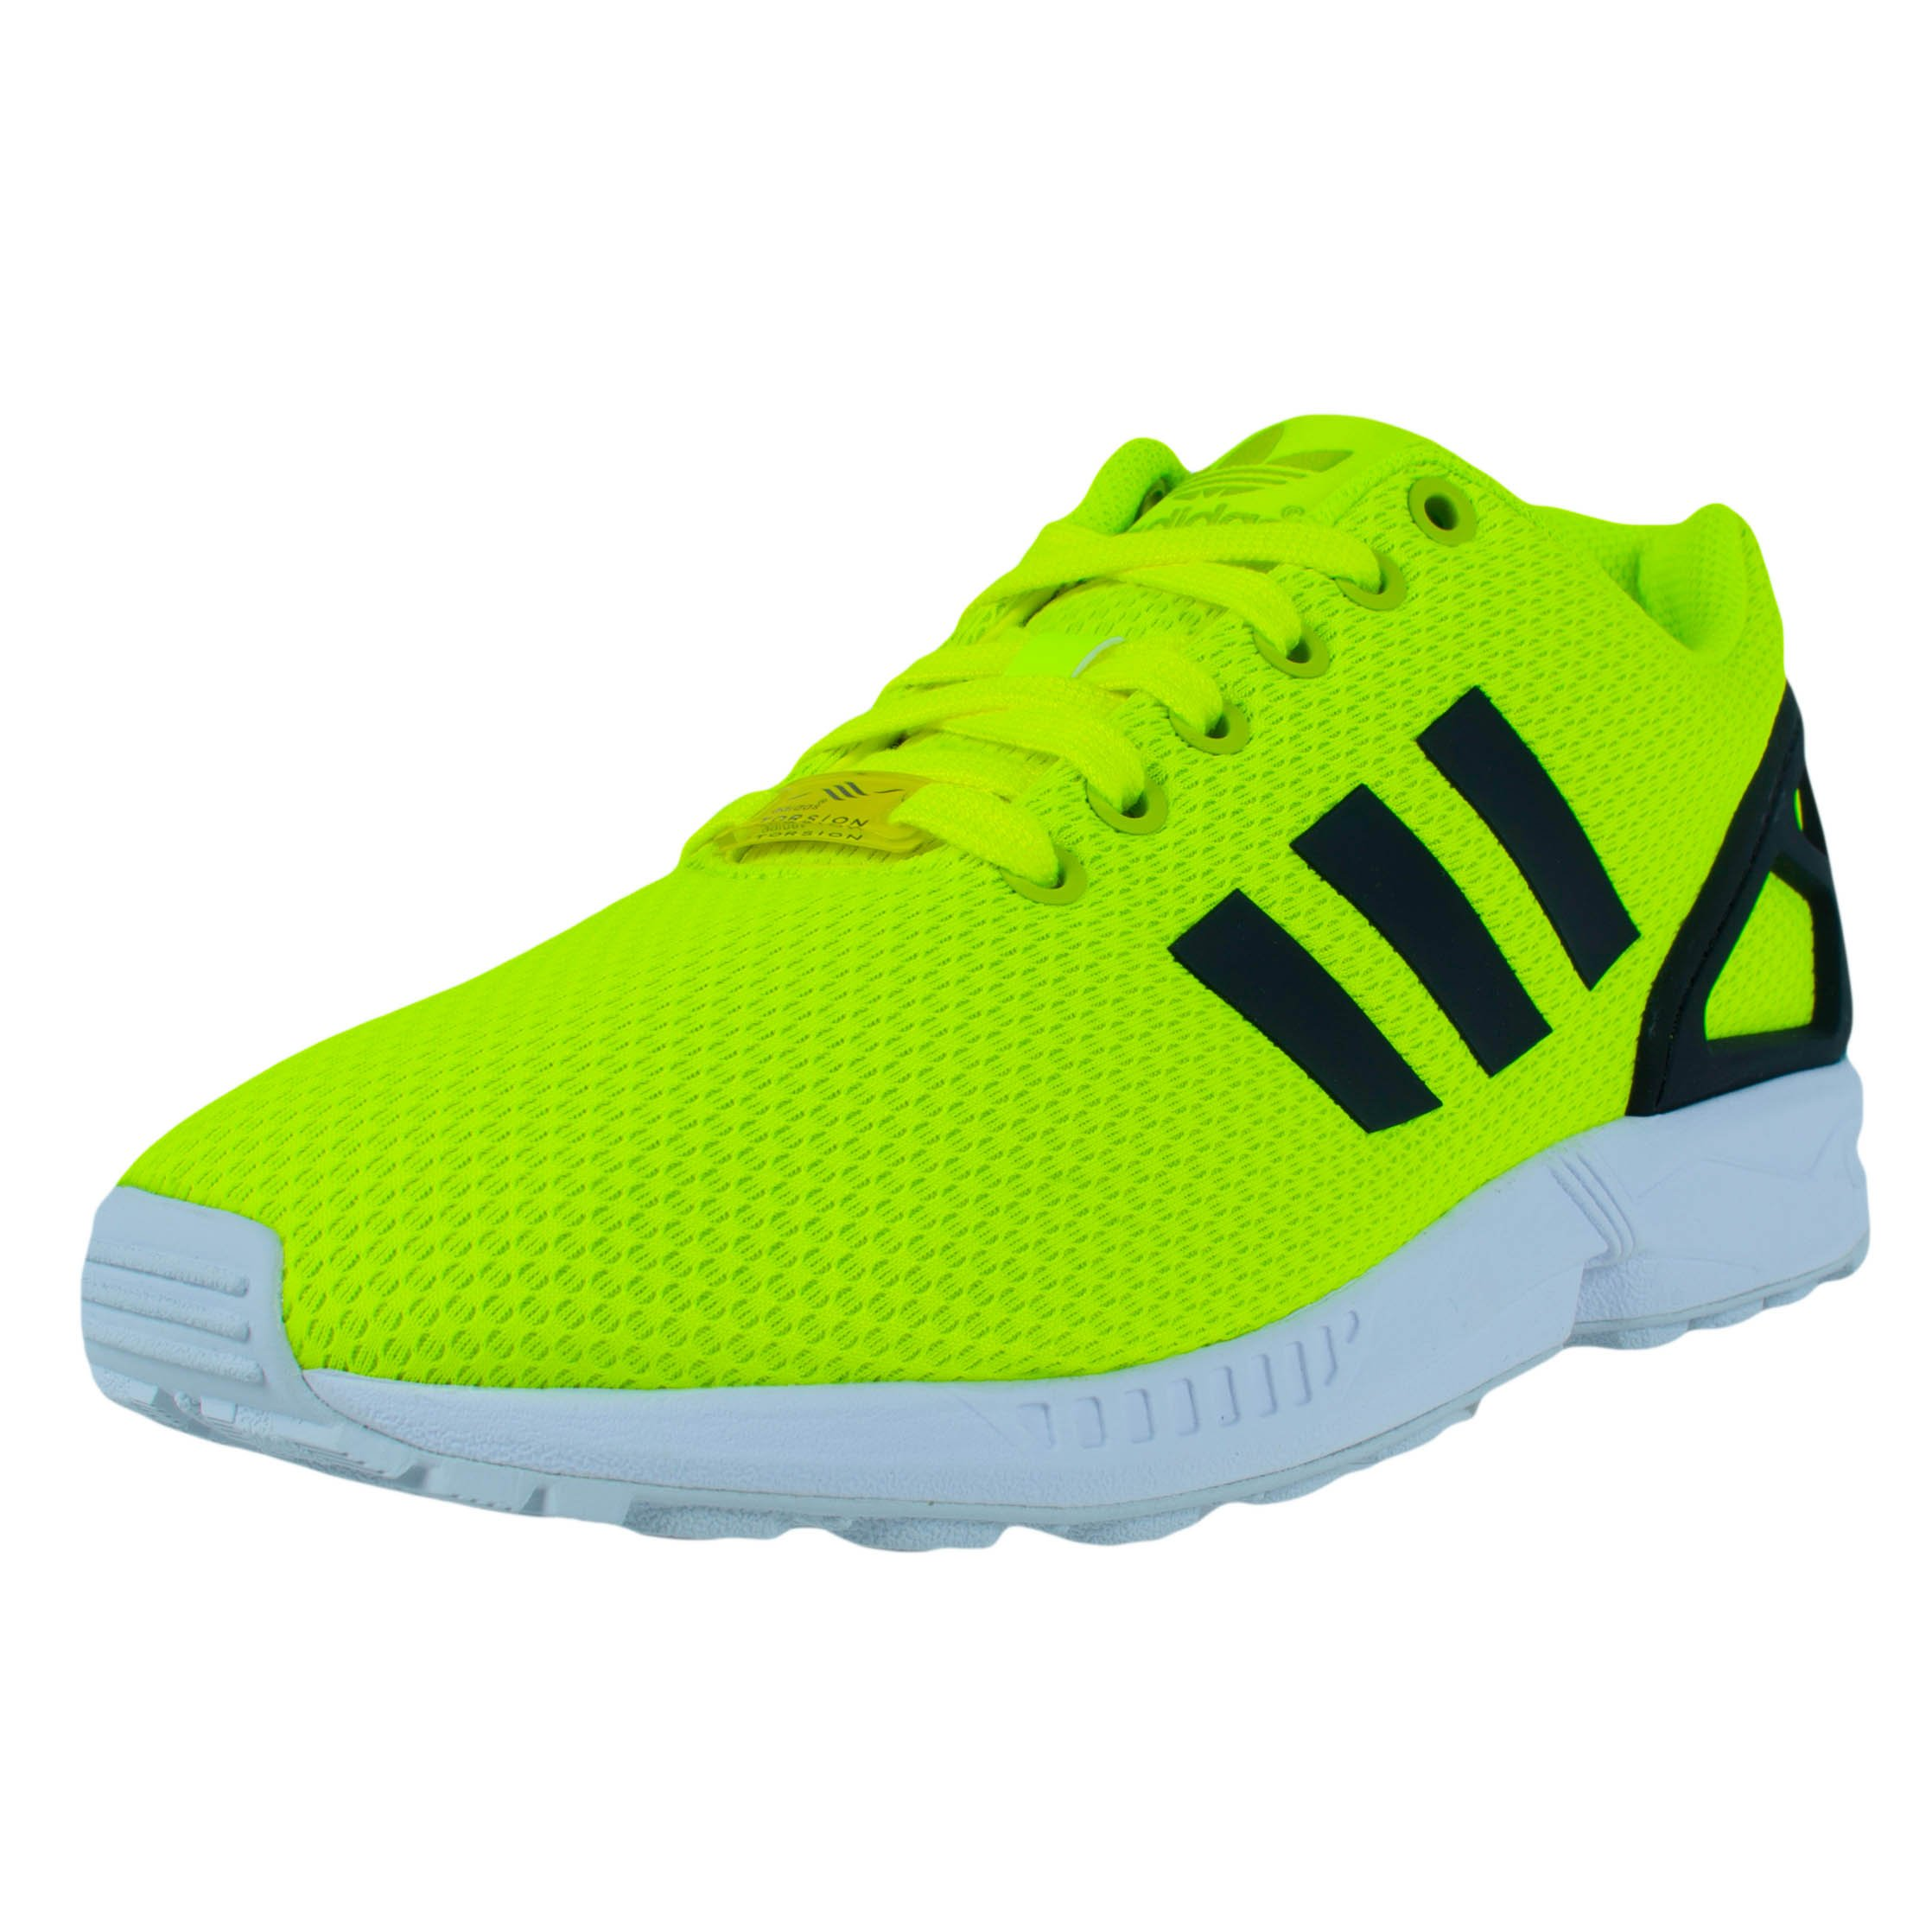 new style 4d8eb fe278 ... new arrivals galleon adidas zx flux running shoes electric green  electric green white m22508 51644 587e3 ...